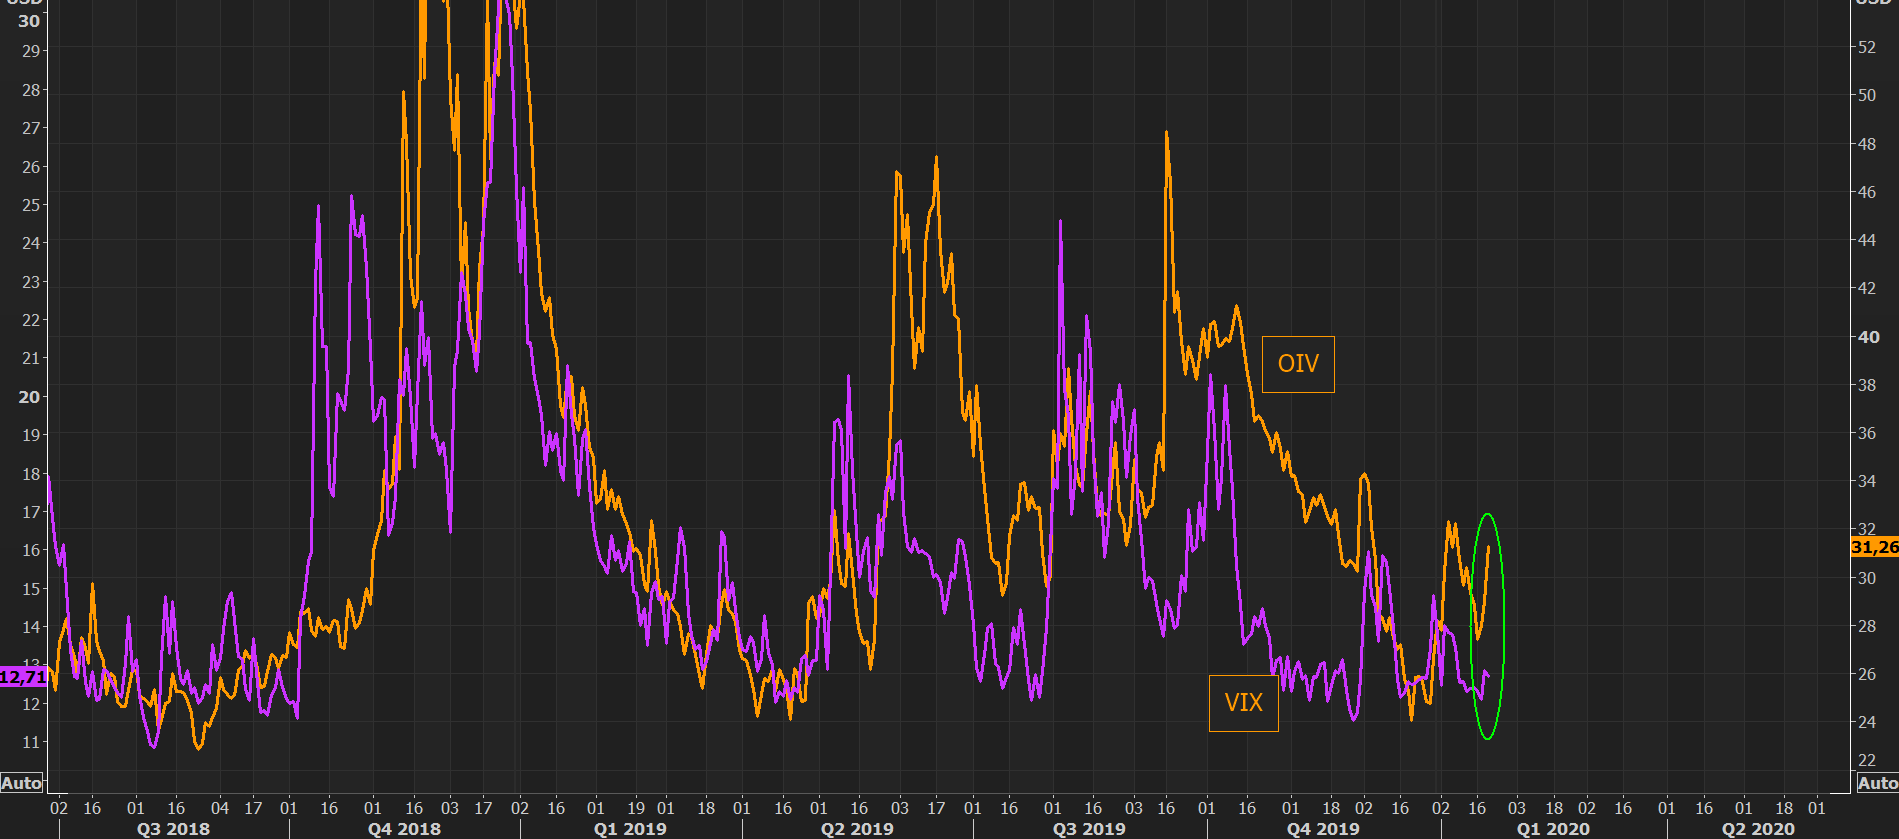 Is oil volatility telling us something?